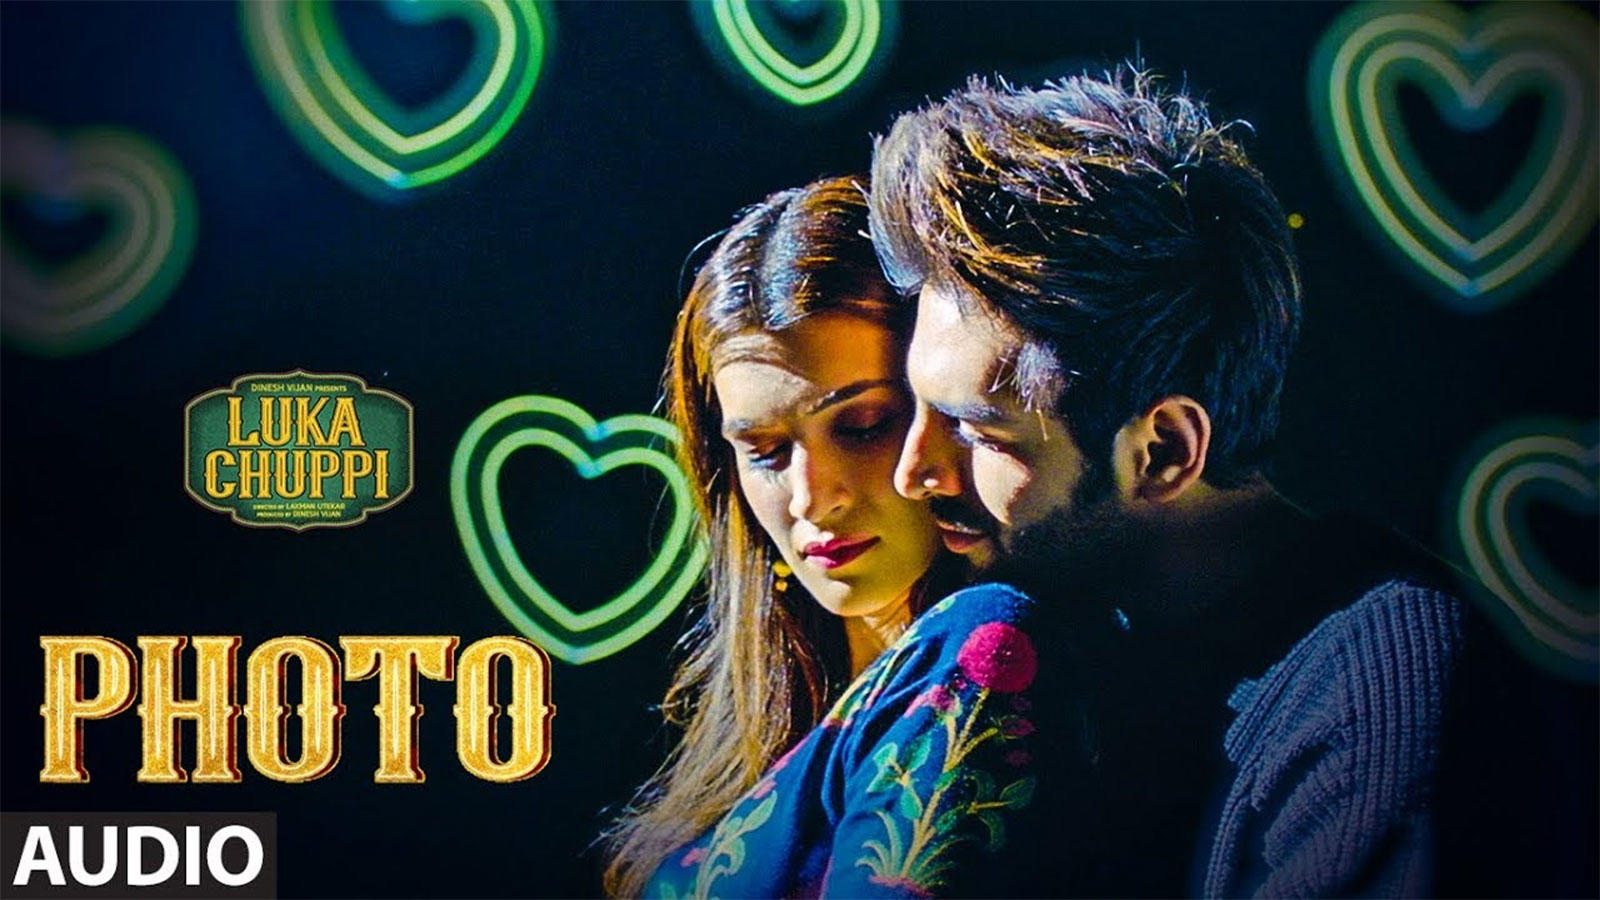 Luka Chuppi | Song - Photo (Audio) | Hindi Video Songs - Times of India